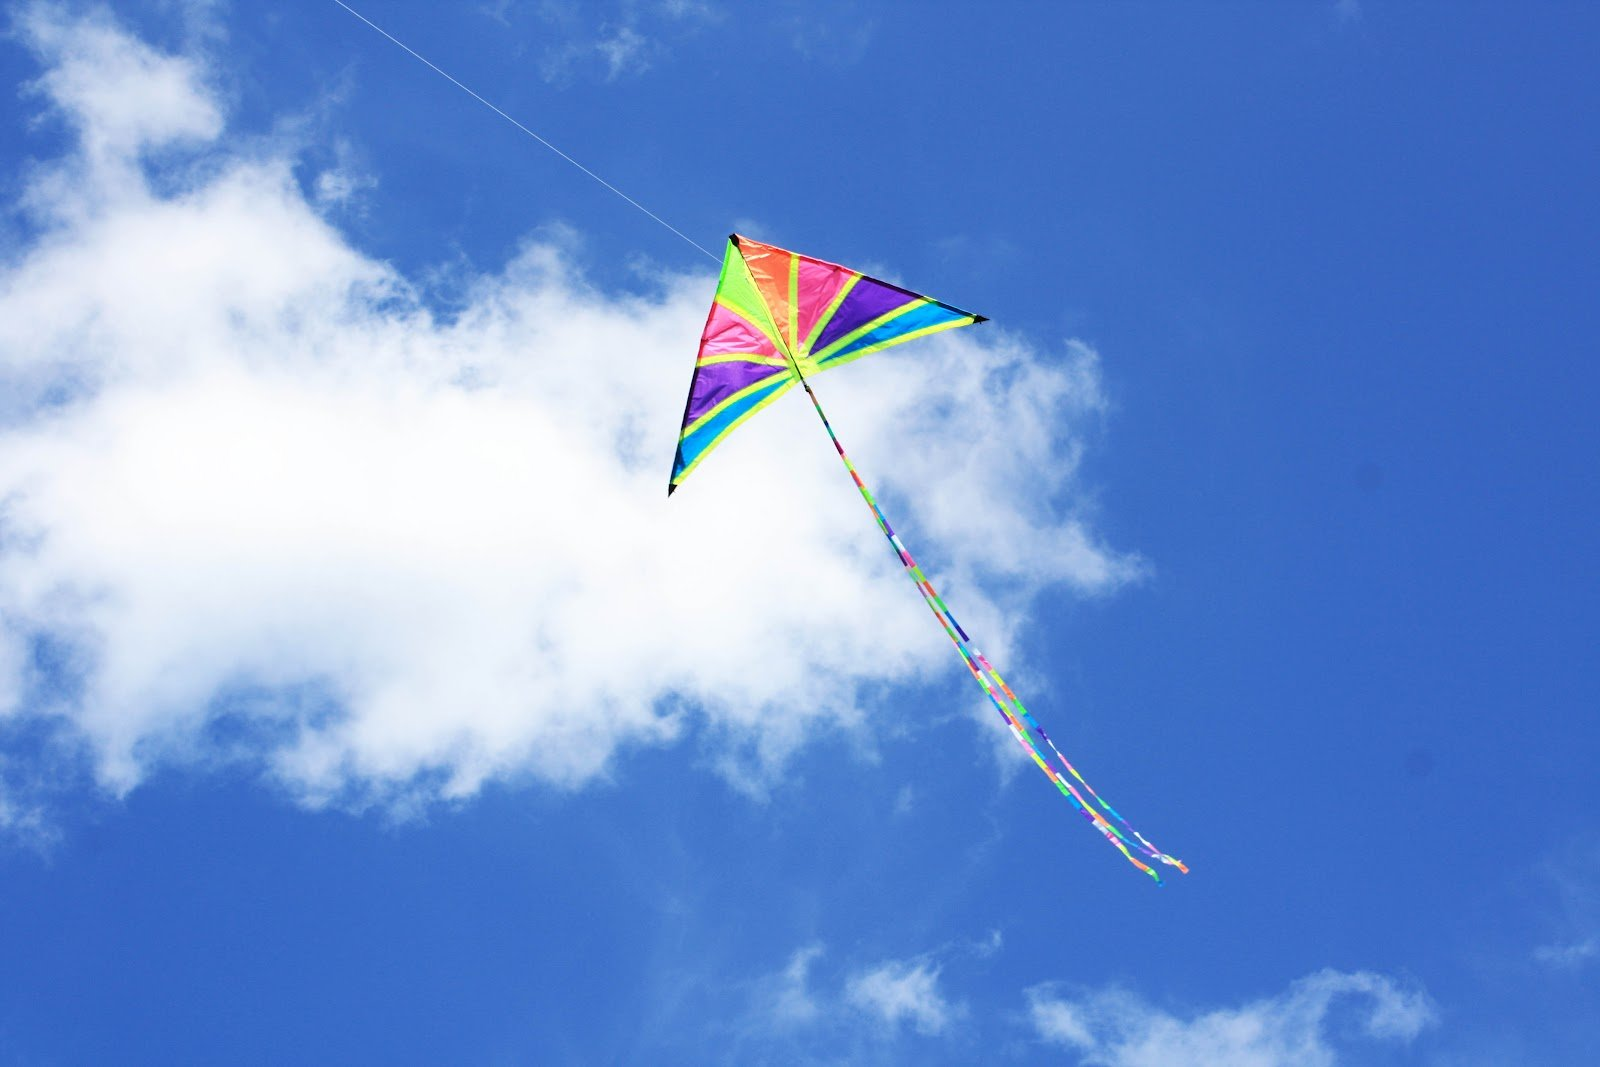 Kite flying bokeh flight fly summer hobby sport sky toy fun 1600x1067